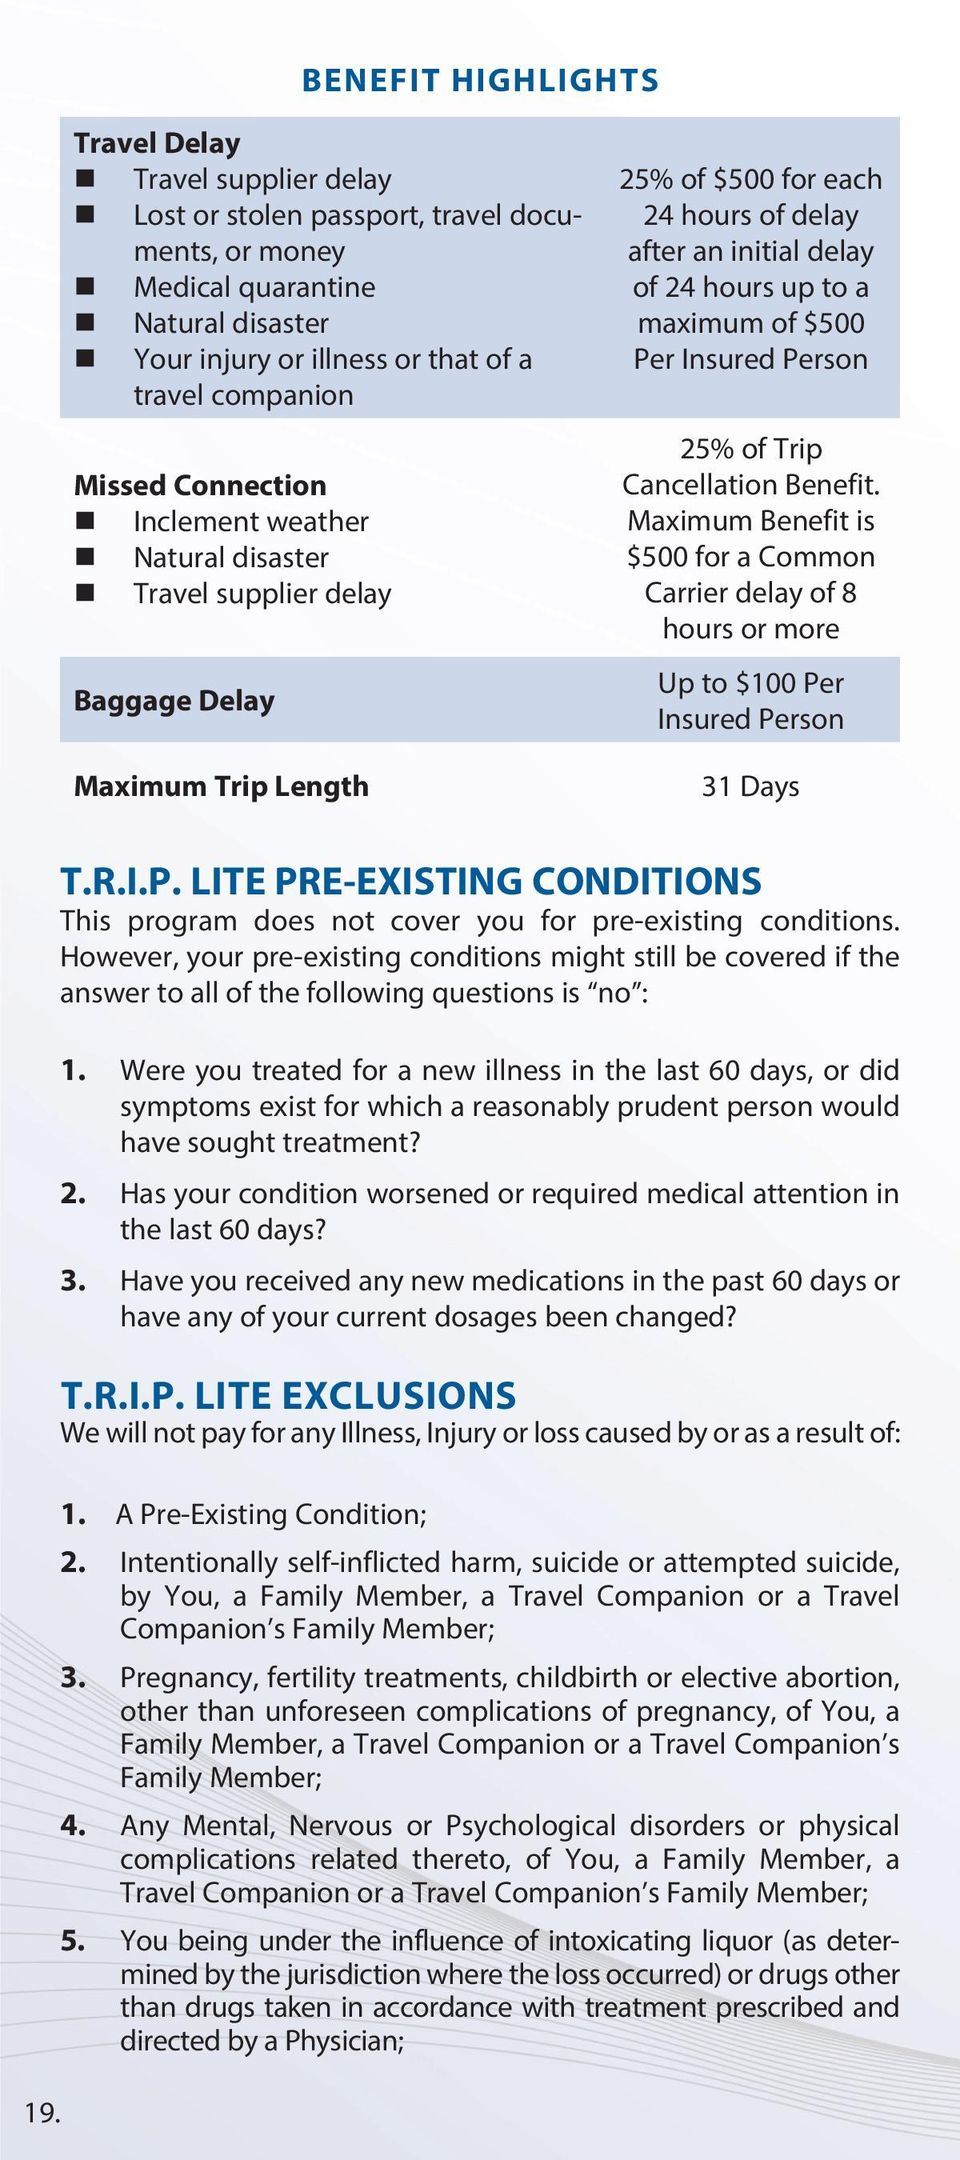 of $500 Per Insured Person 25% of Trip Cancellation Benefit. Maximum Benefit is $500 for a Common Carrier delay of 8 hours or more Up to $100 Per Insured Person 31 Days T.R.I.P. LITE PRE-EXISTING CONDITIONS This program does not cover you for pre-existing conditions.